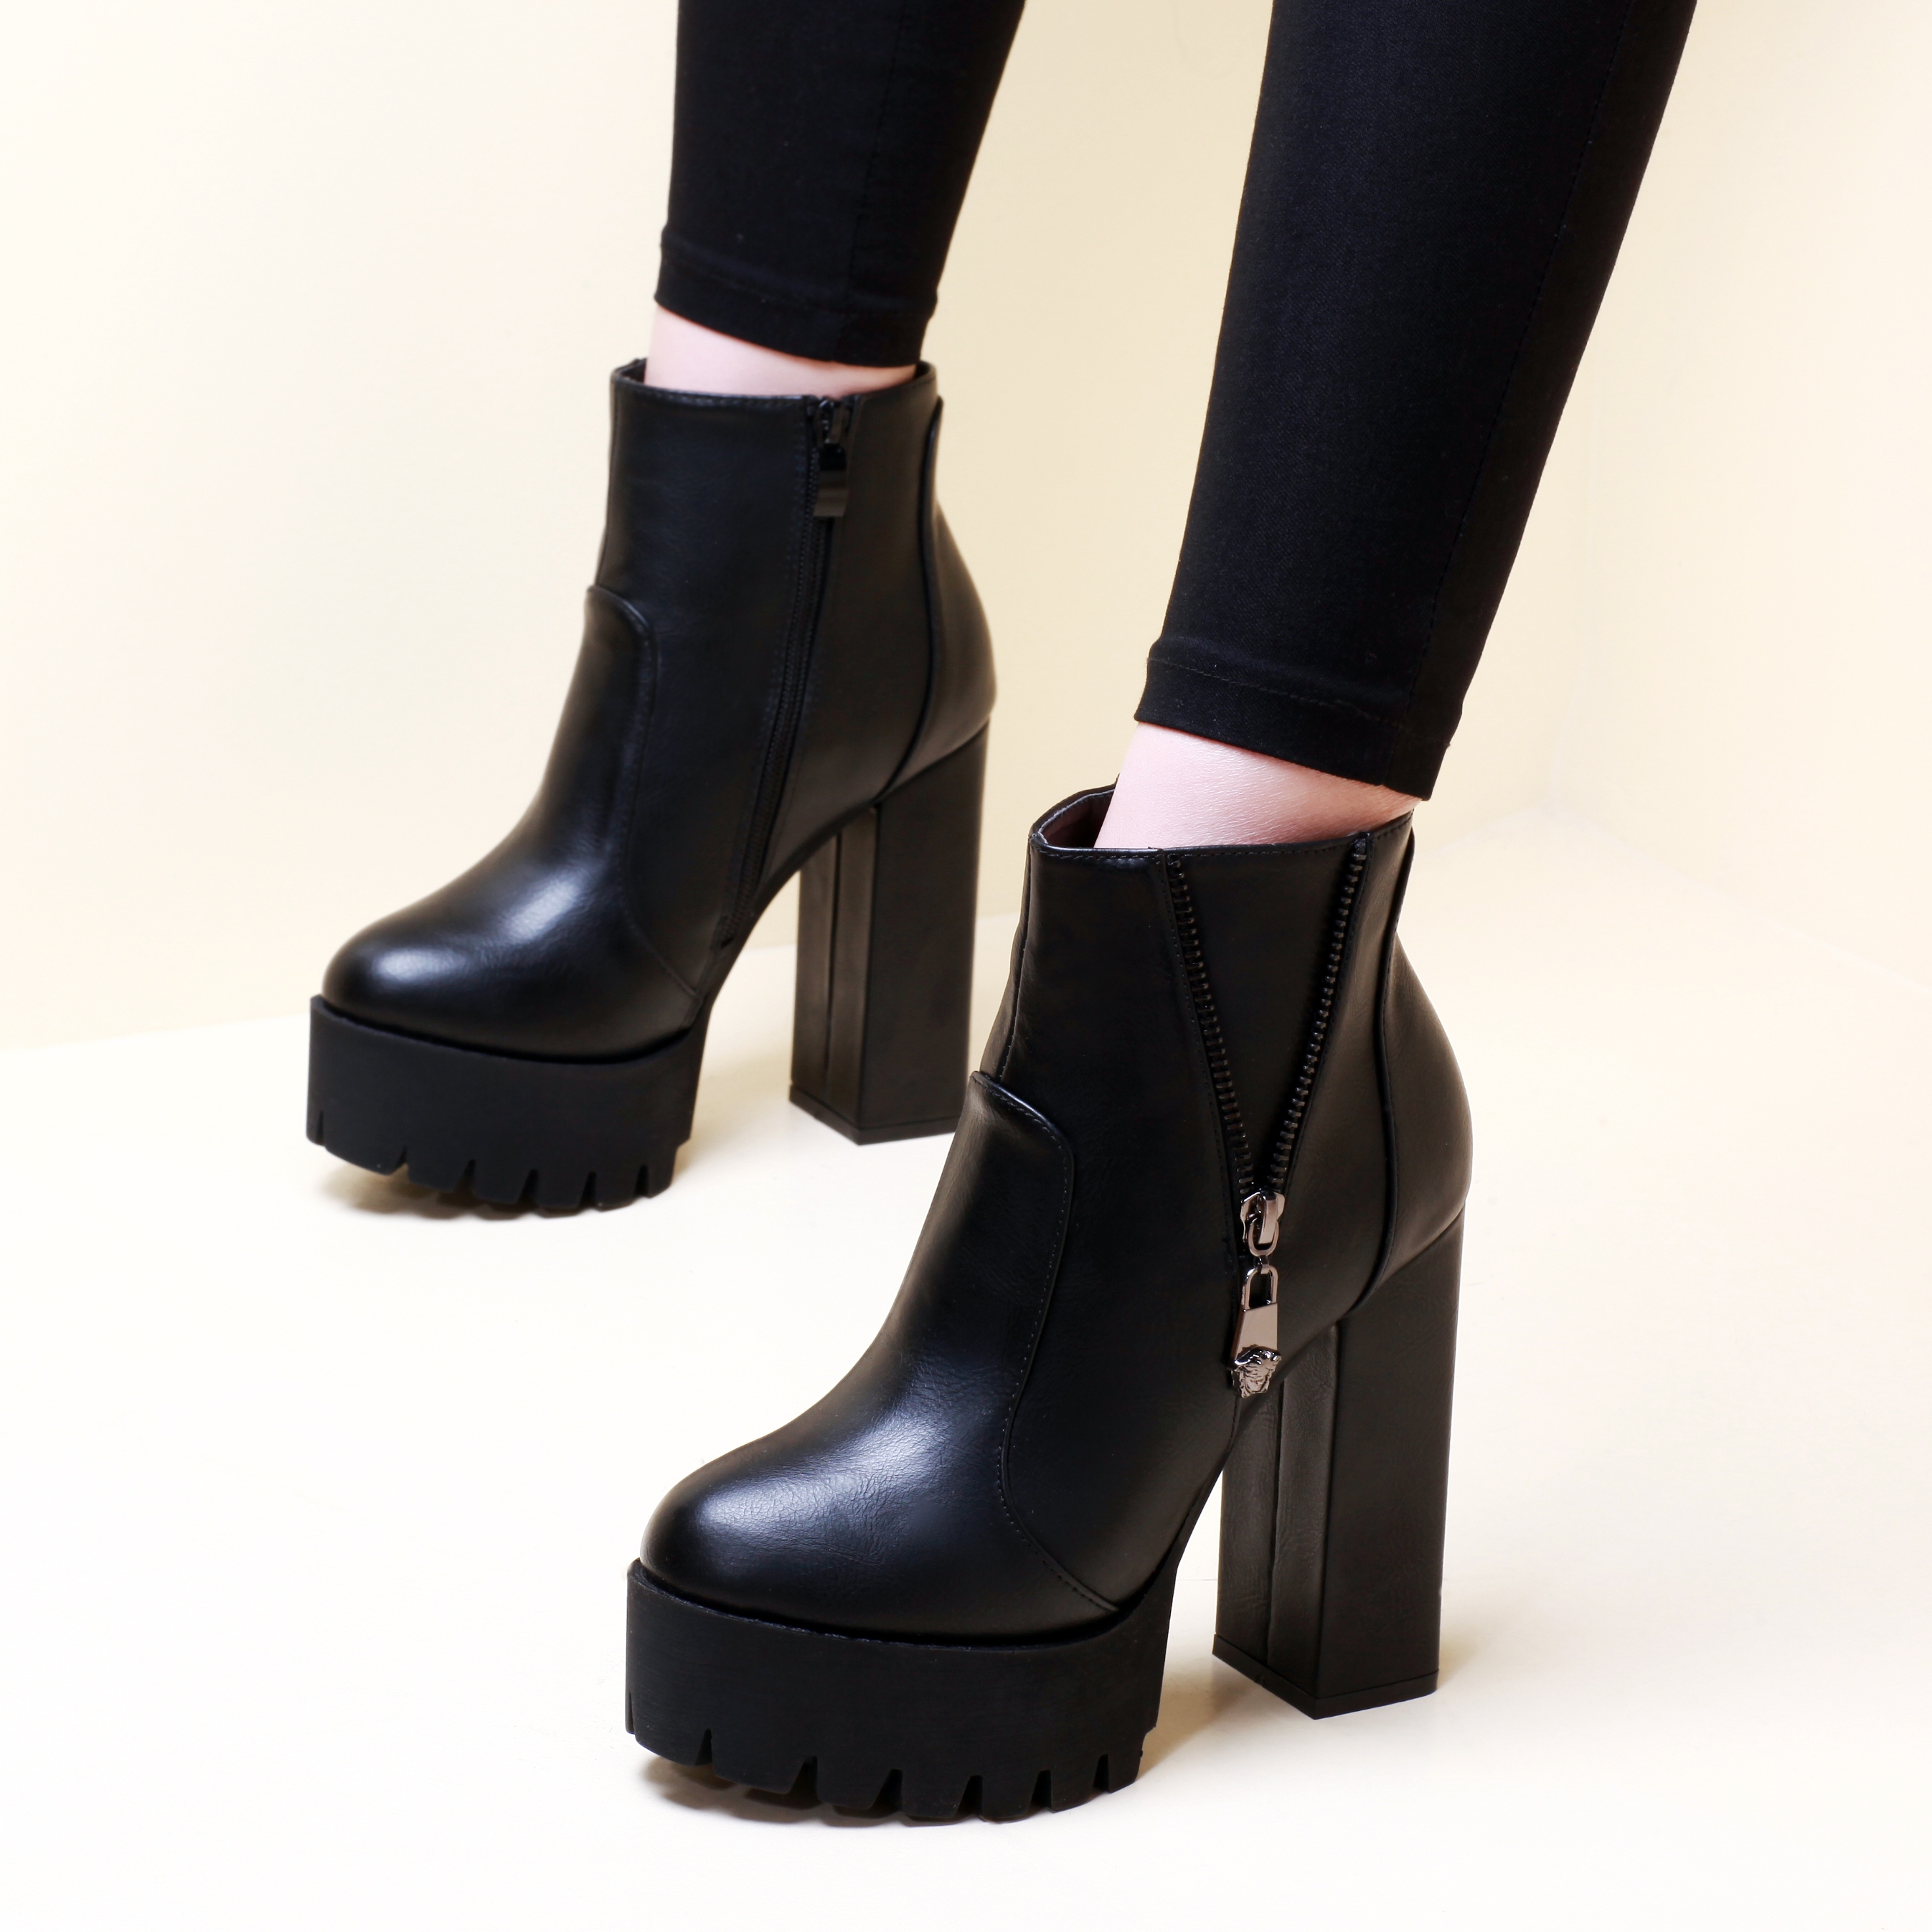 2018 Women Out Door Ankle Boots Shoes Black Zip Short Plush Round Toe Square High Heels Boots For Ladies Size 34-39 CH-A0004 esveva 2018 women boots zippers black short plush pu lining pointed toe square high heels ankle boots ladies shoes size 34 39